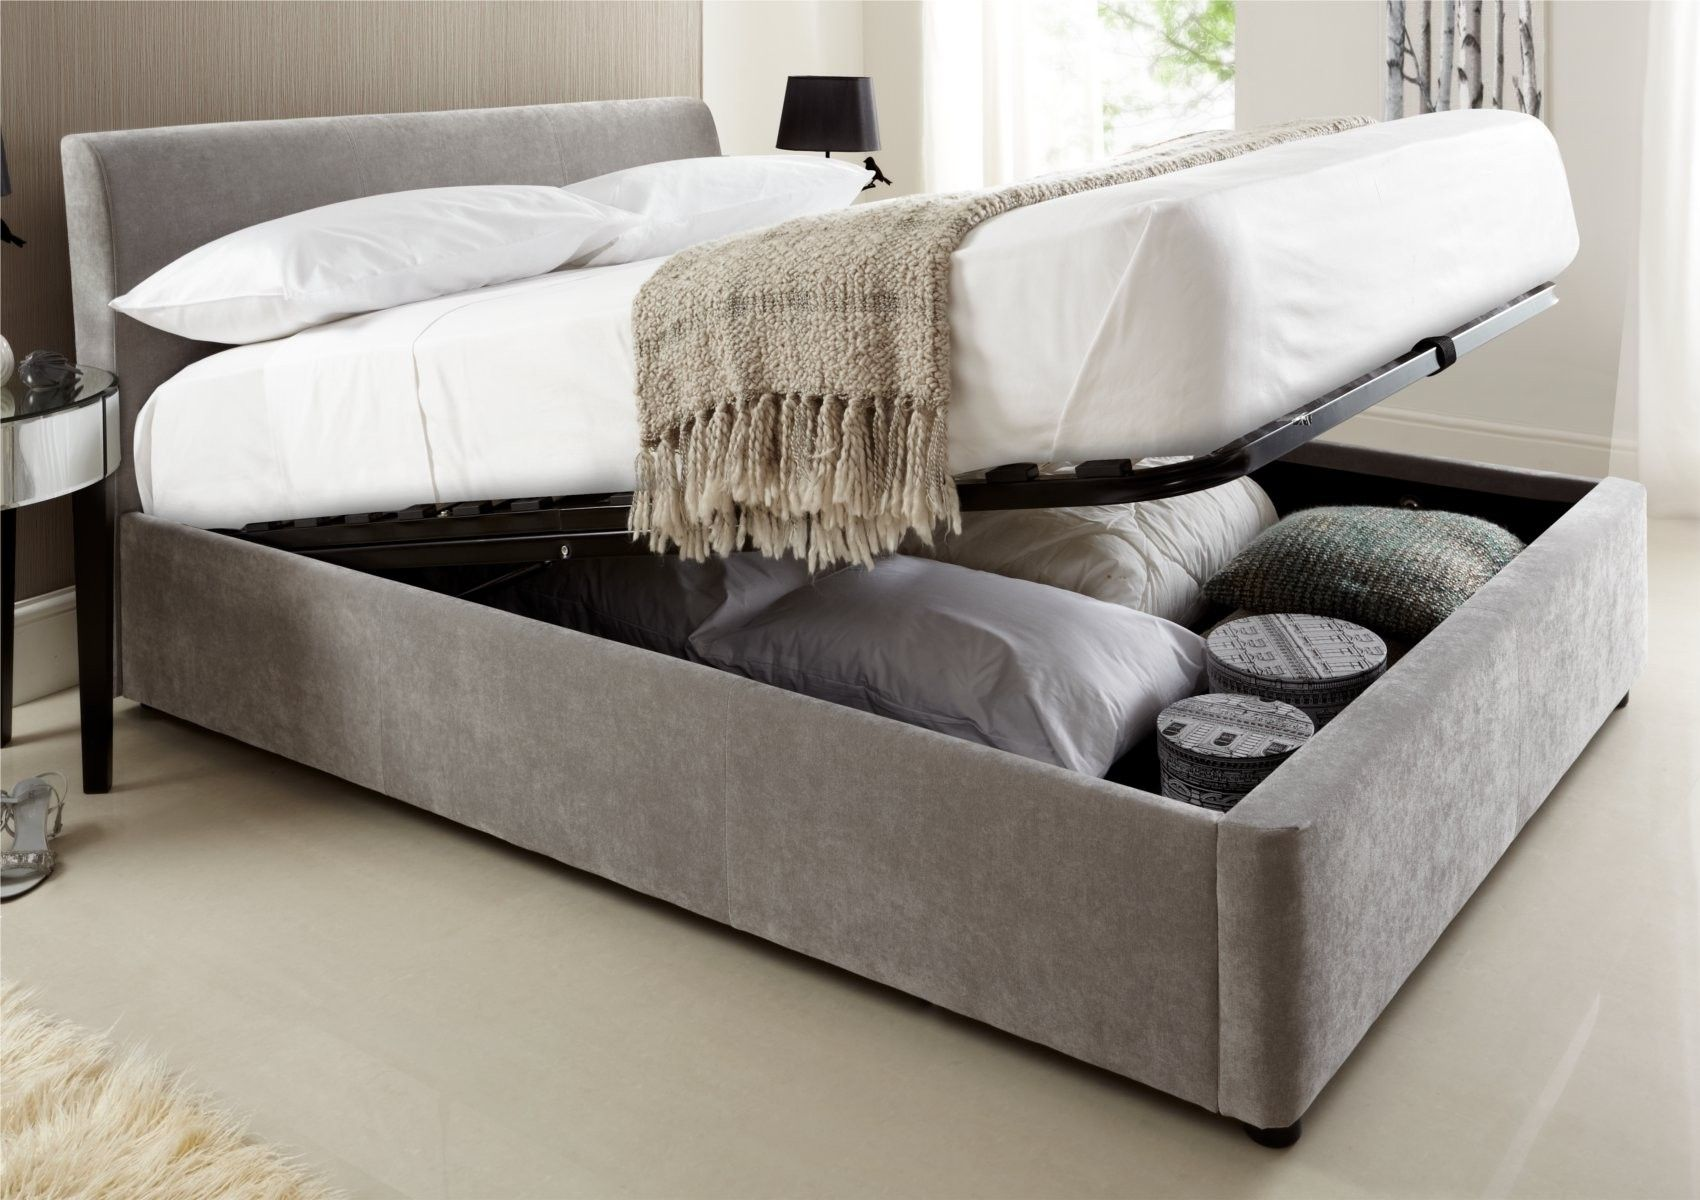 1000+ ideas about Ottoman Storage Bed on Pinterest | Storage beds, Ottoman bed and Grey bedrooms - Ideas About Ottoman Storage Bed On Pinterest Storage Beds